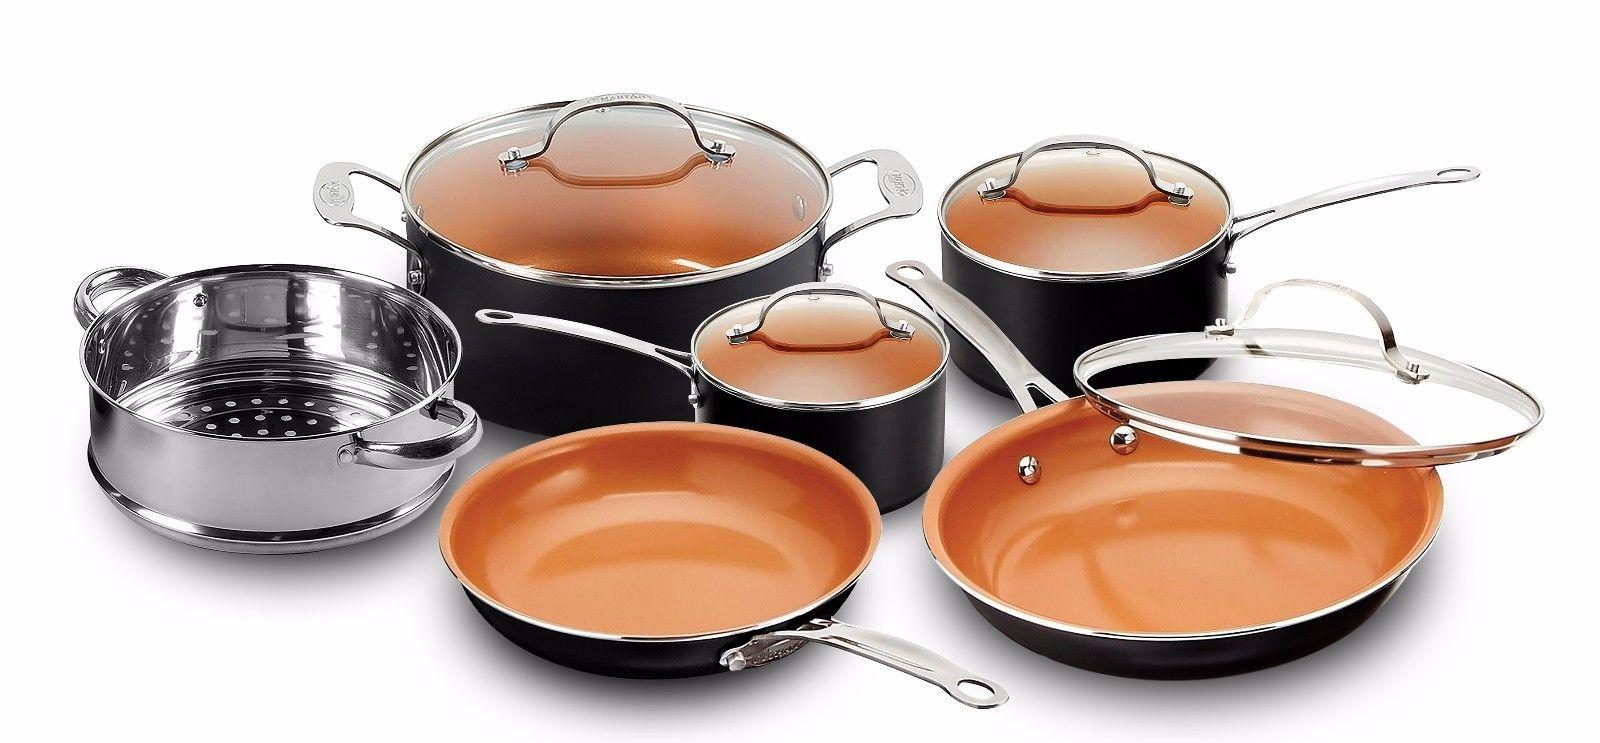 Gotham Steel 10-Piece Kitchen Nonstick Frying Pan & Cookware